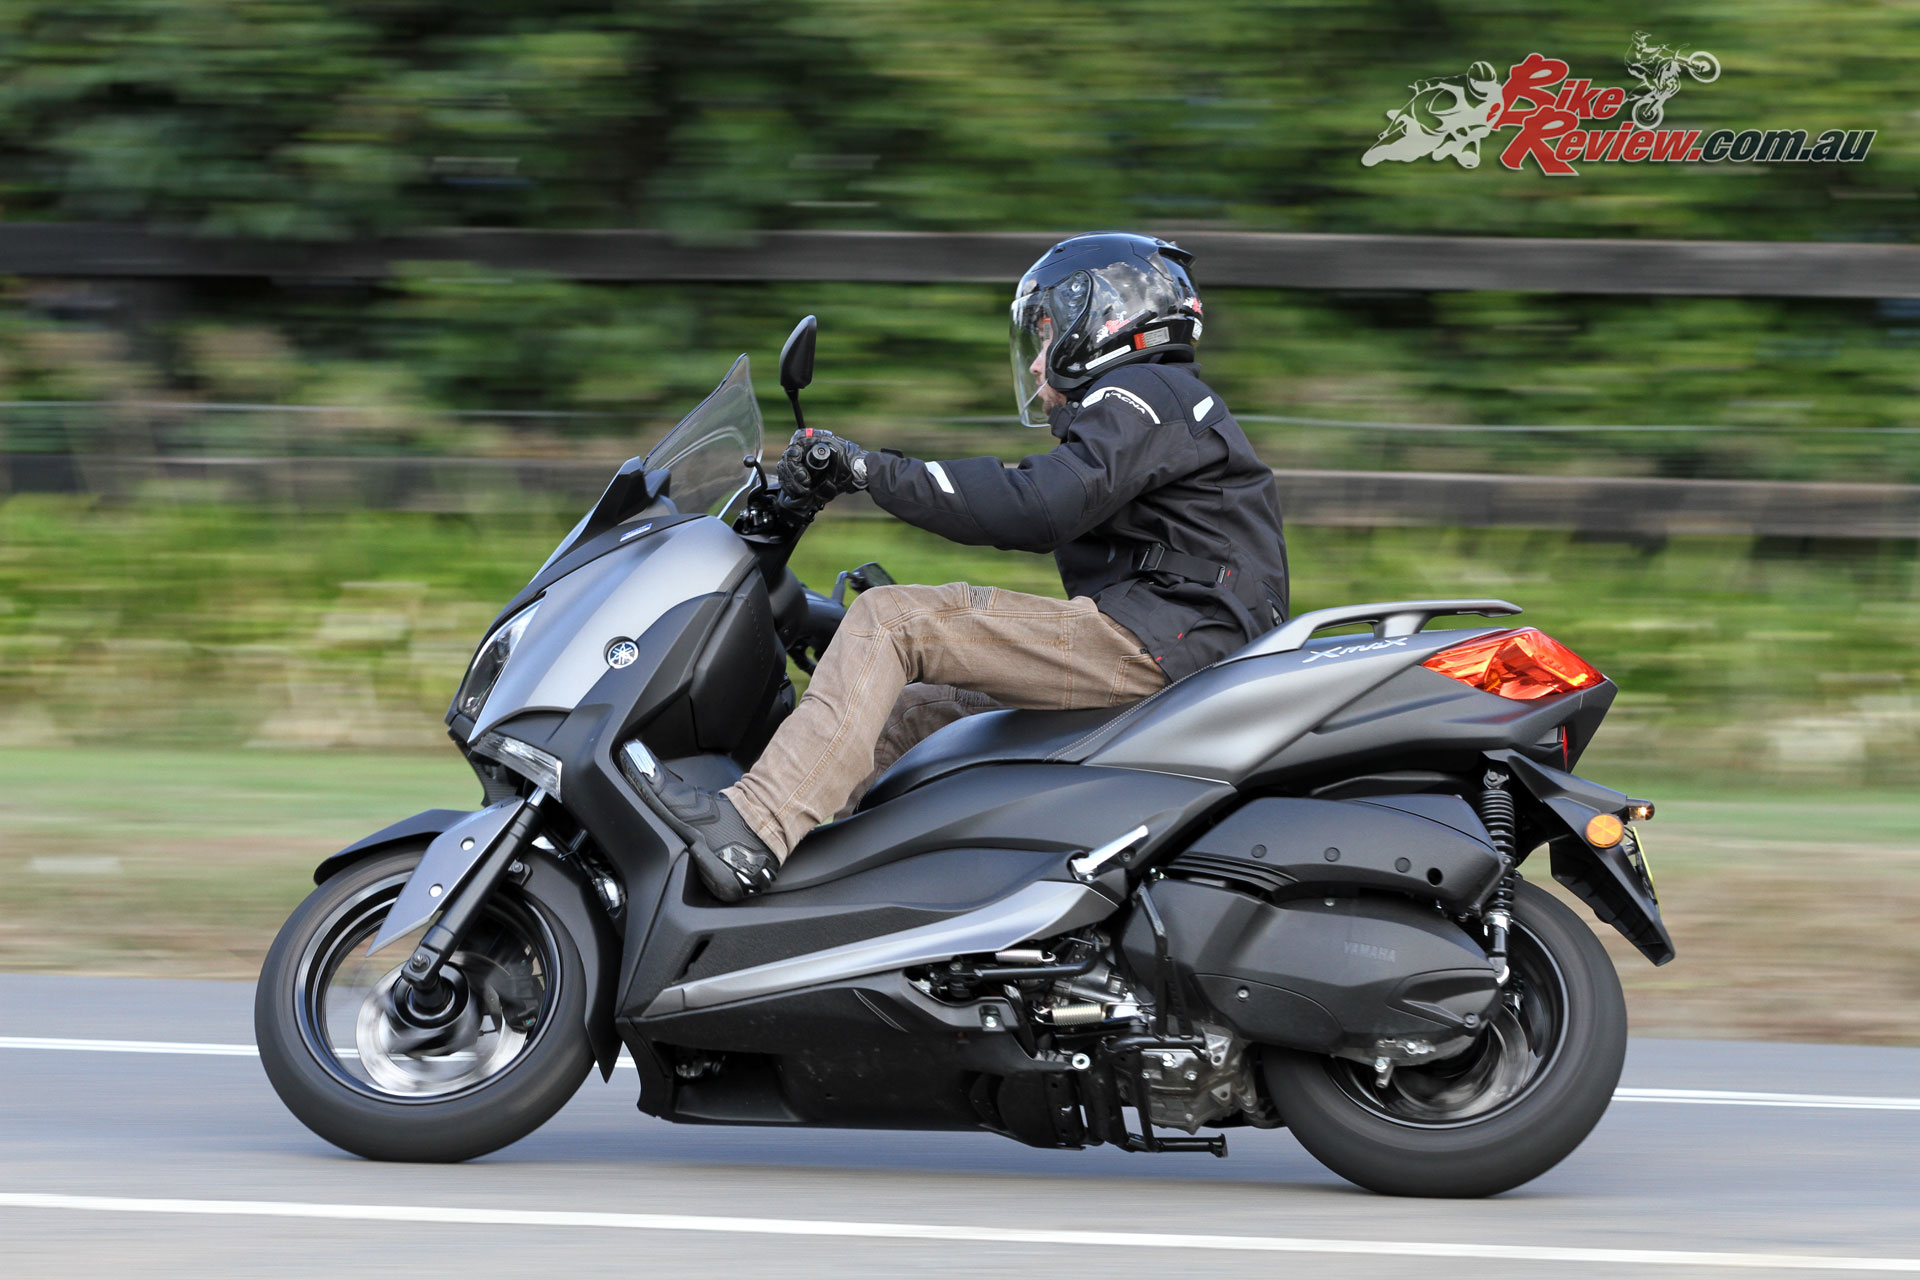 The XMax is a capable all-rounder, in fact I'd be happy comparing it to all the motorcycles in a similar capacity range.